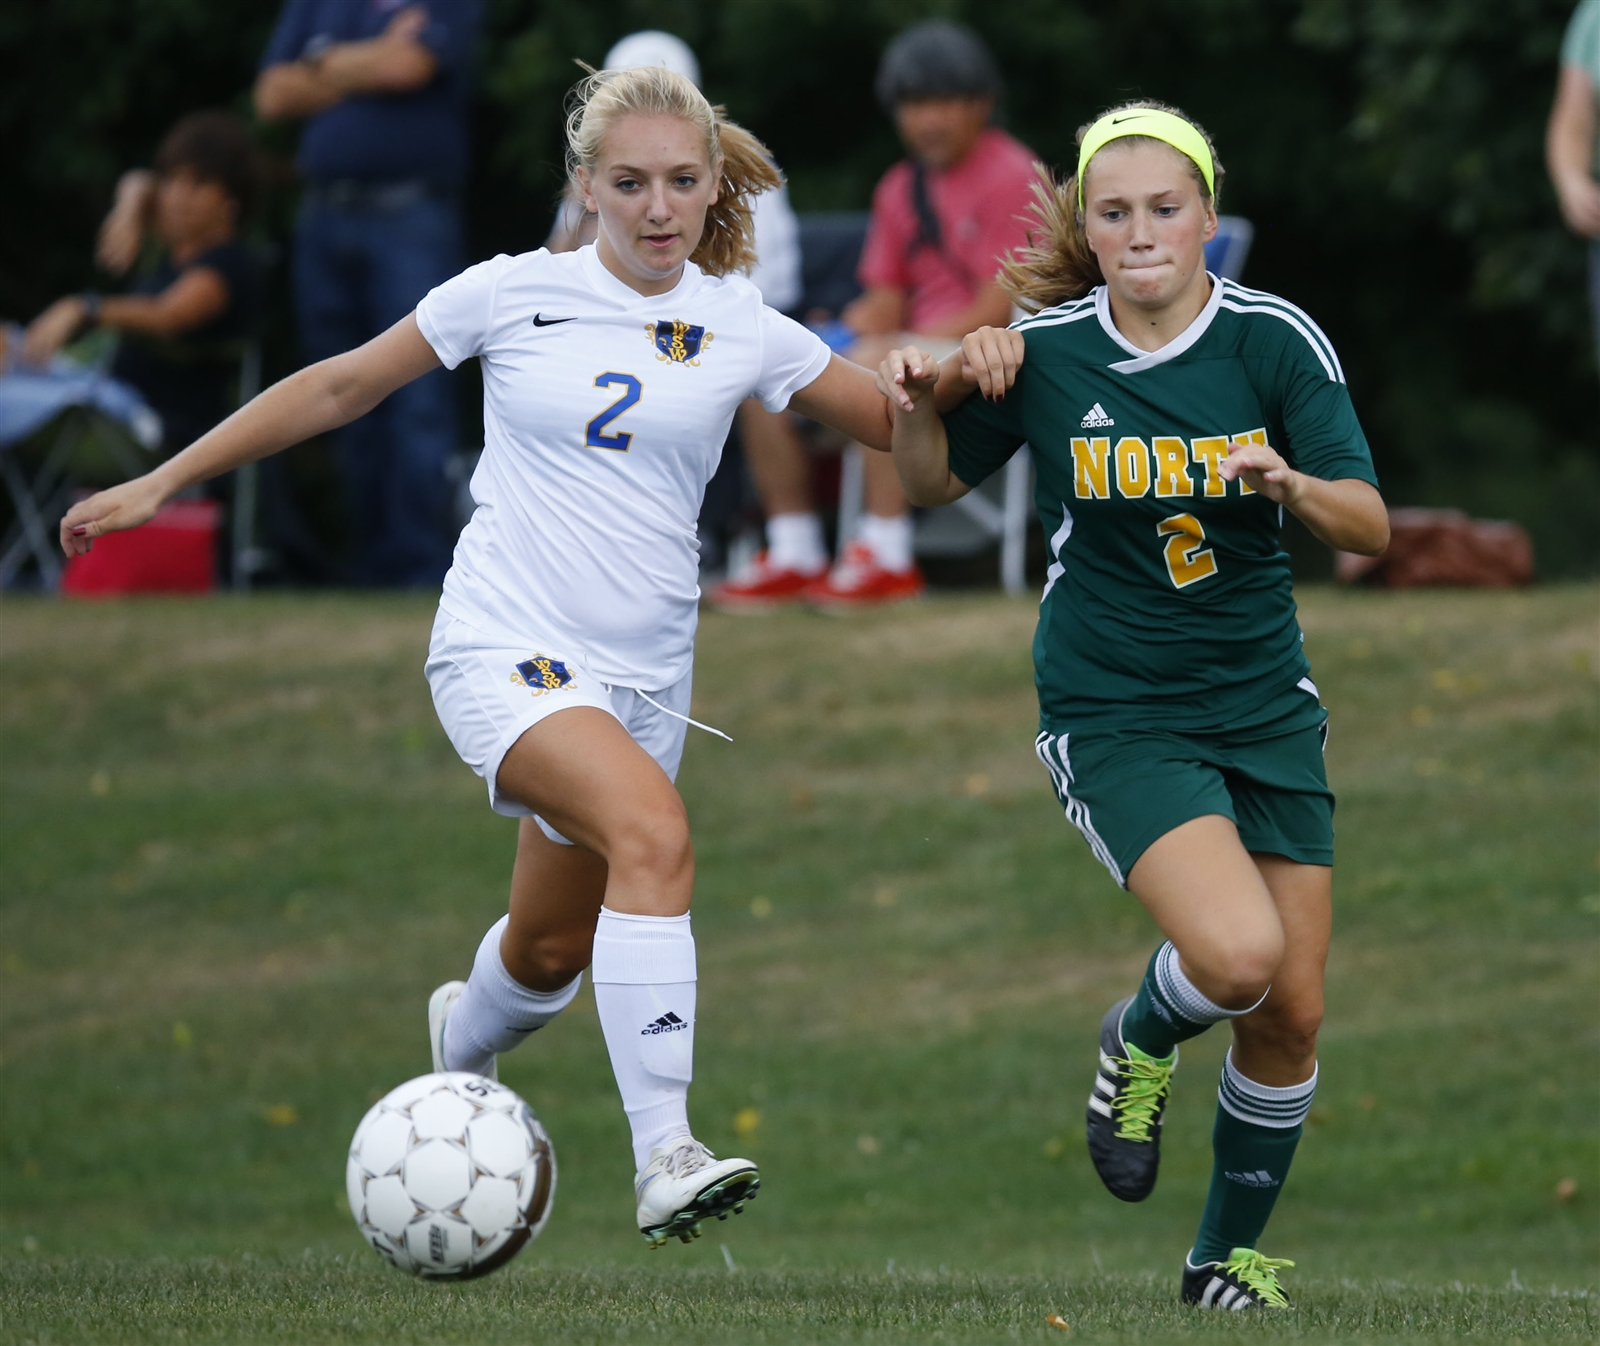 West Seneca West's Cassie Siwy and Williamsville North's Lianna Van Sice battle for a loose ball during first half action at the West Seneca Soccer complex on Thursday, Sept. 8, 2016.